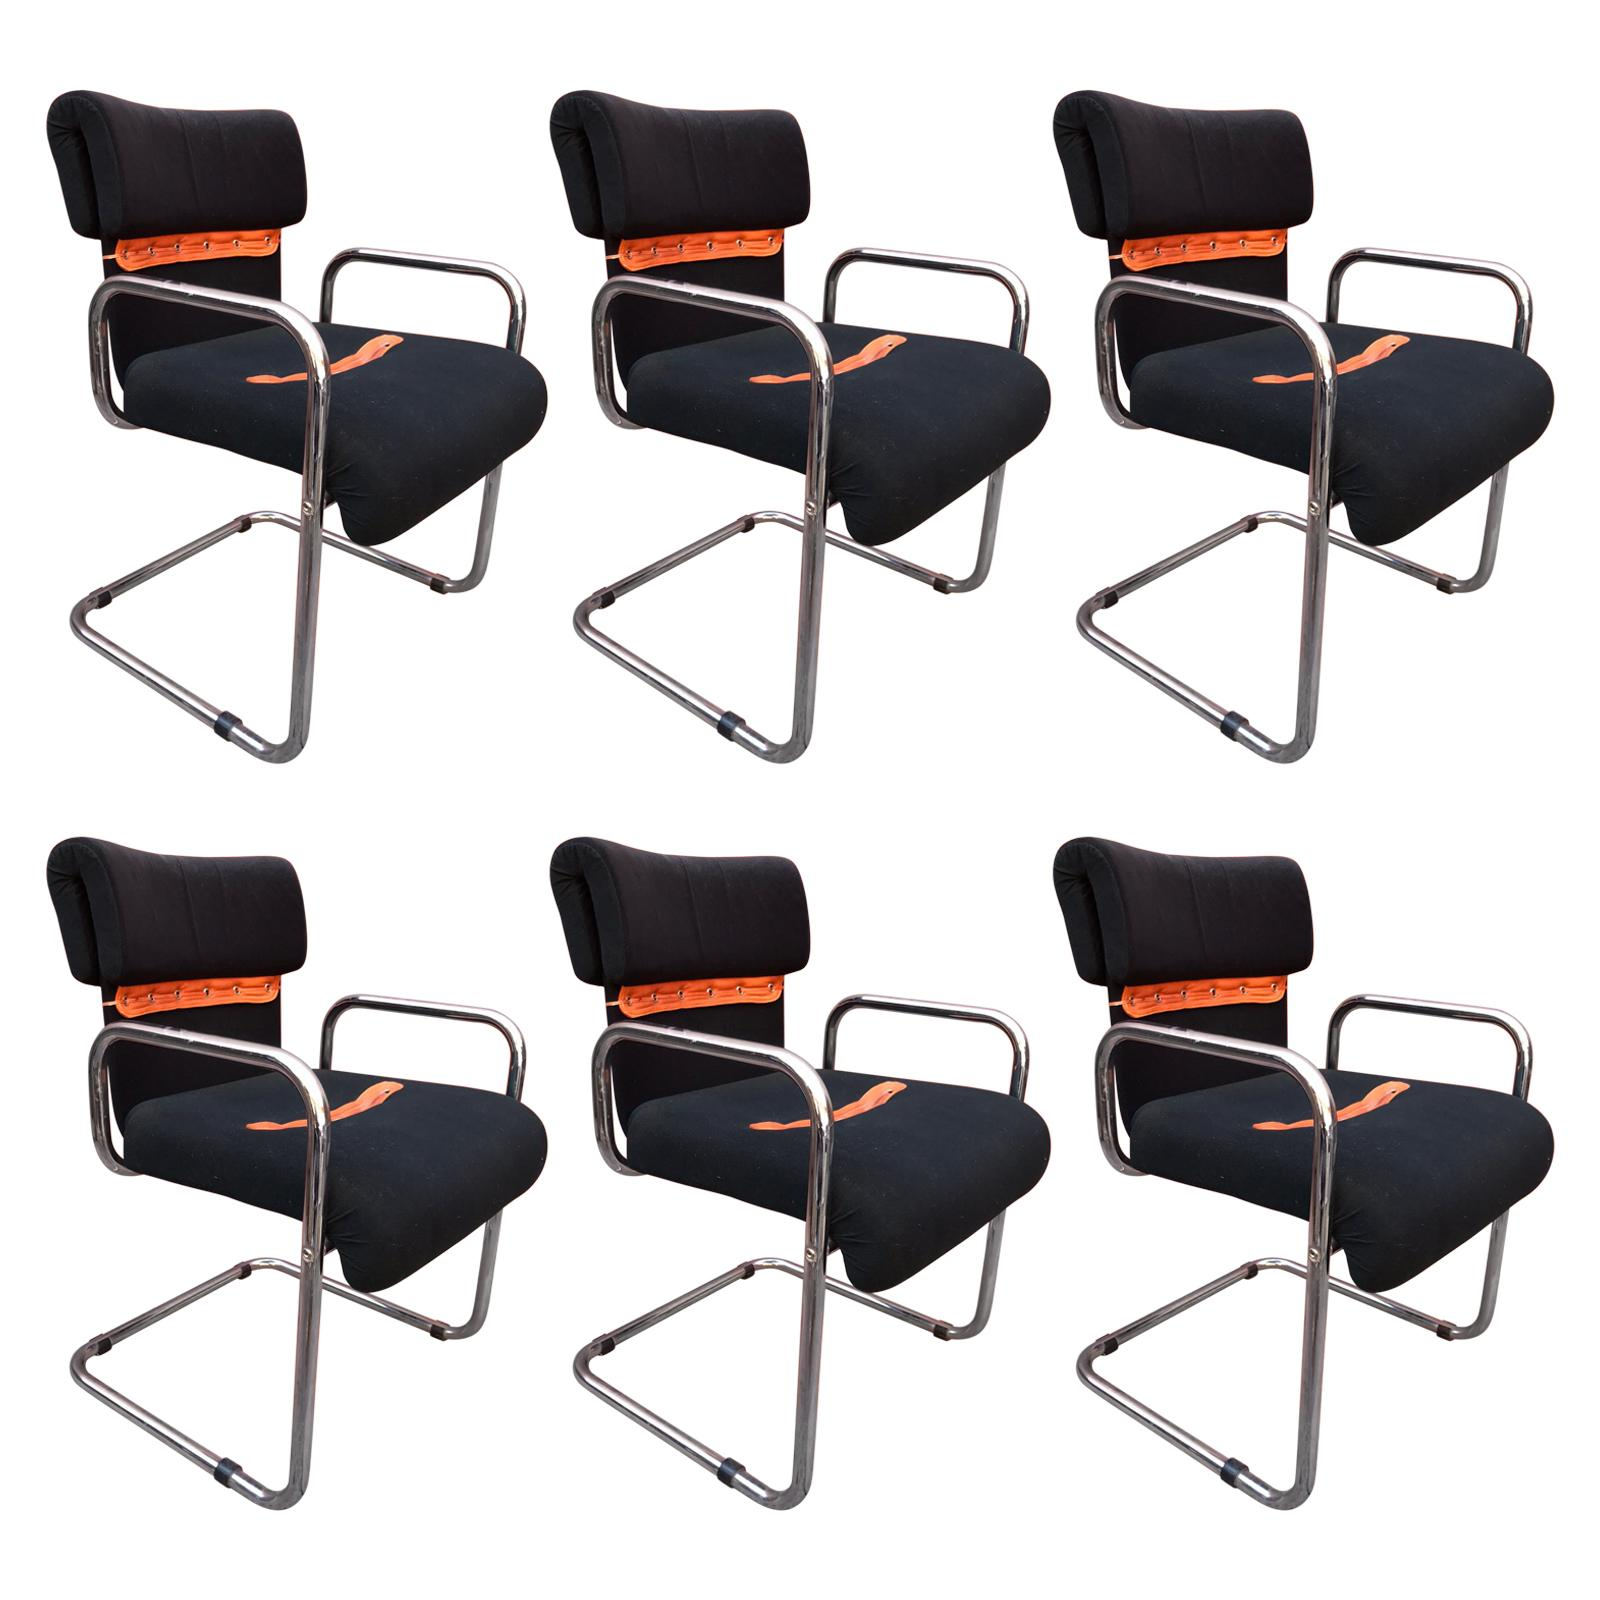 Set of Six Tucroma Italian Chairs Designed by Guido Faleschini for Mariani